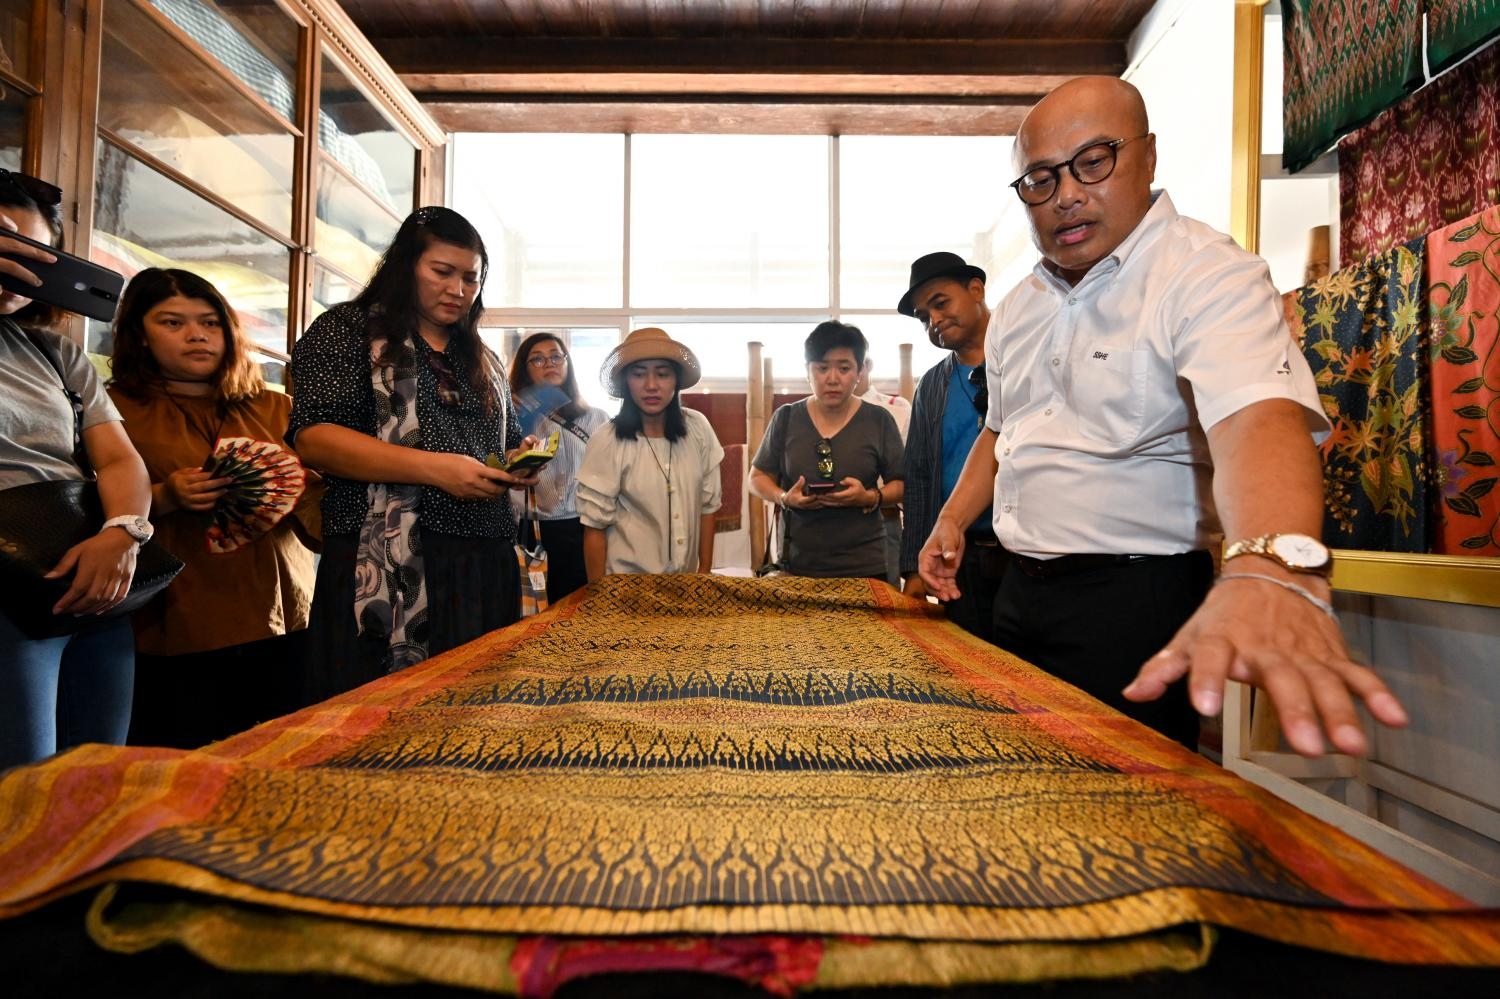 238 Inspiration House, a private museum run by Panya Phoonsin in Songkhla, exhibits old textiles. The TCEB plans to spend B200m in extra funds to promote meetings, incentives, conferences and exhibitions.Arunothai Puttaruksa